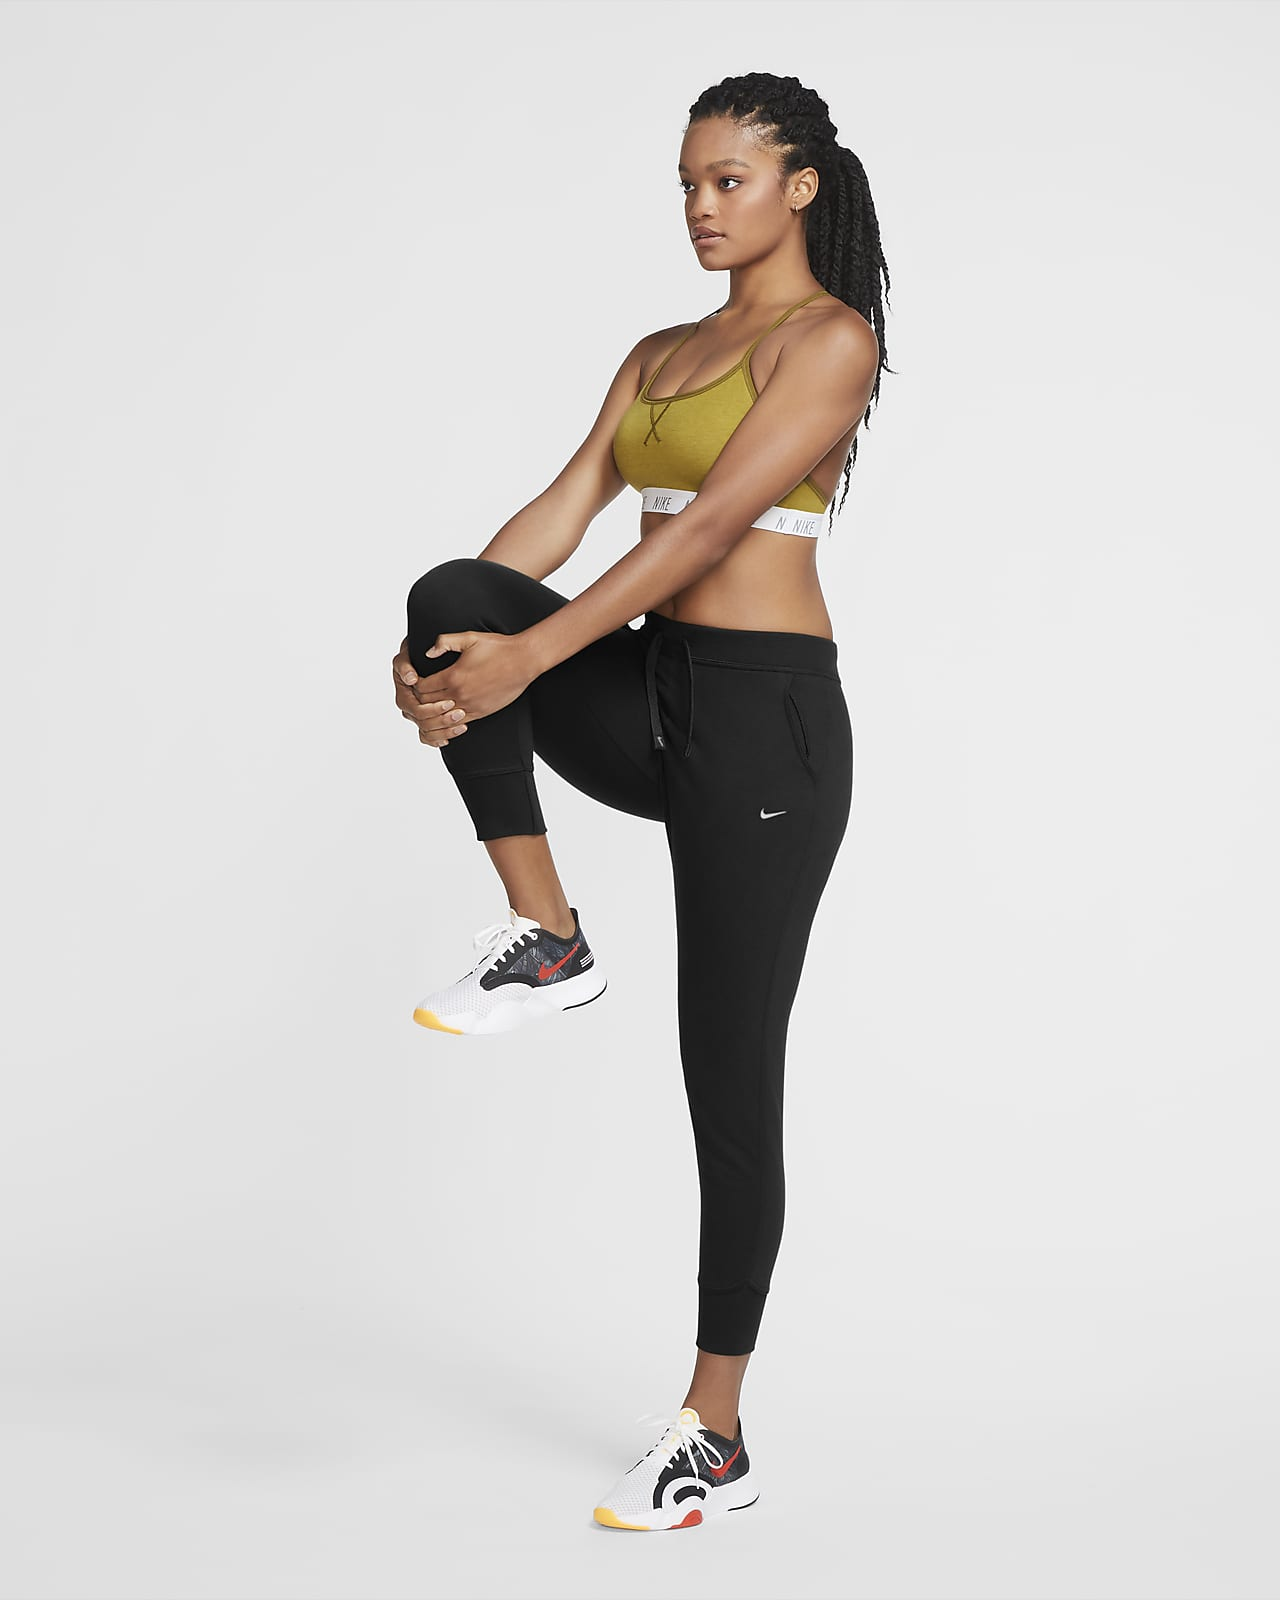 Nike Dri Fit Get Fit Women S Training Trousers Nike Nl The wide racerback style lets you move freely during your workout, while the wide. nike dri fit get fit women s training trousers